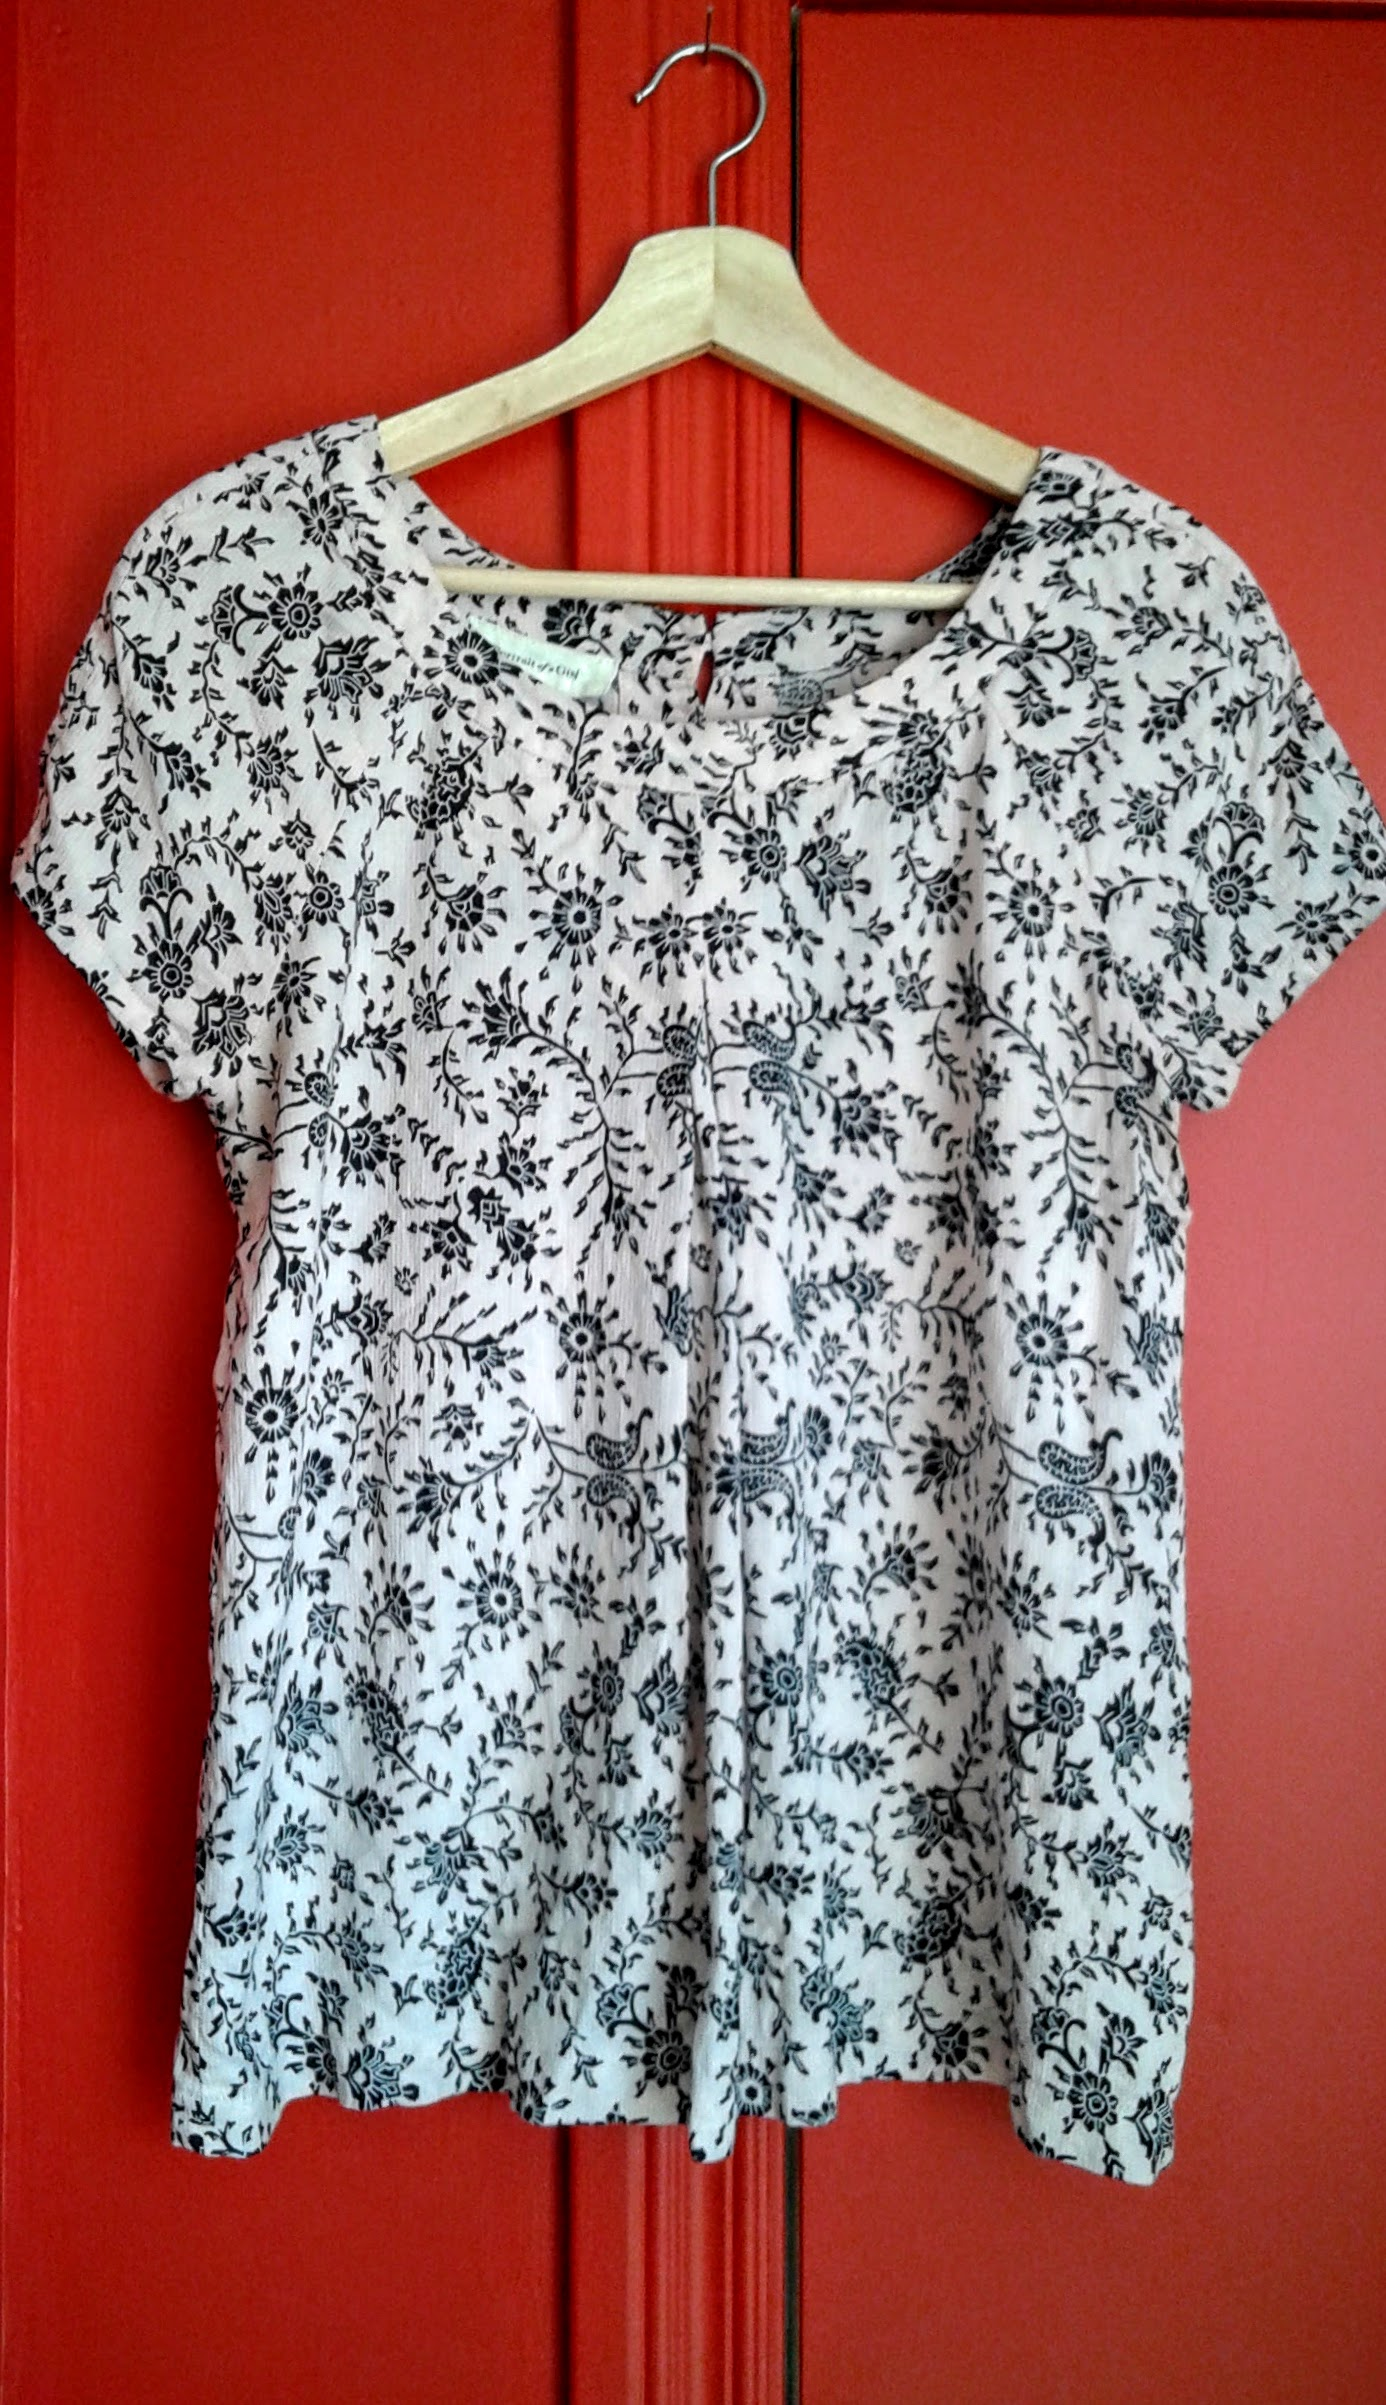 Portrait of a Girl top; Size M, $22